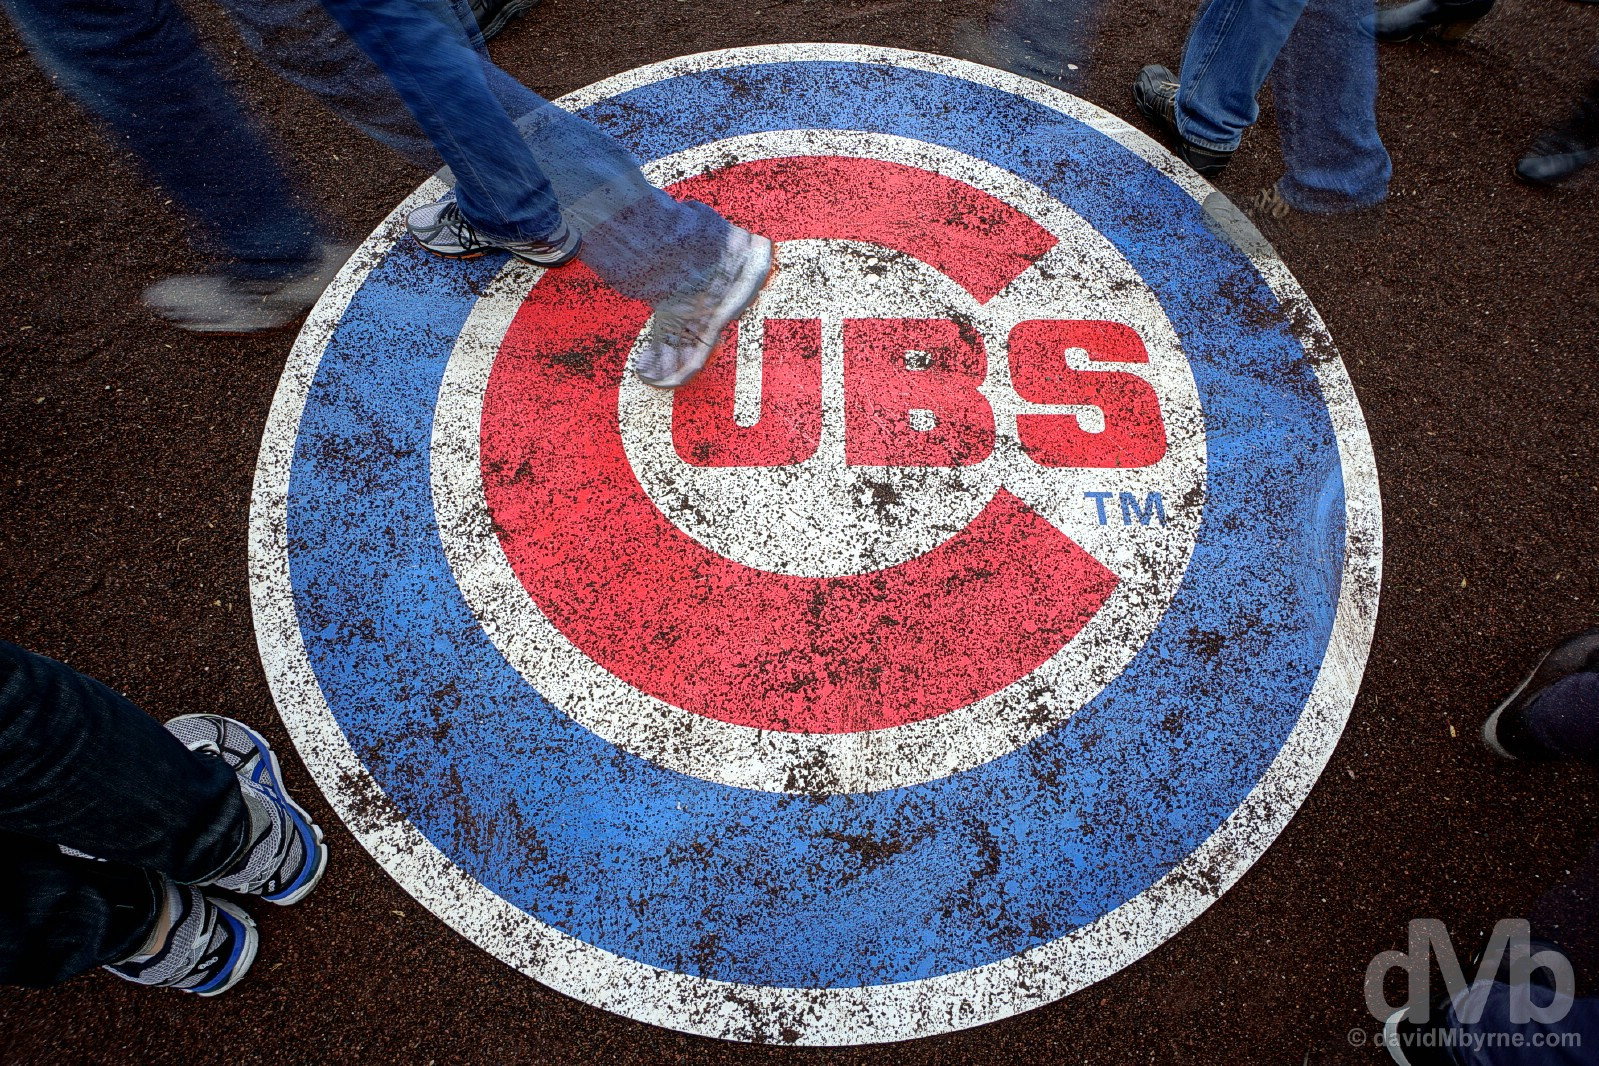 The on deck circle in Wrigley Field, the home of the Chicago Cubs. Wrigleyville, Chicago, Illinois, USA. October 1, 2016.